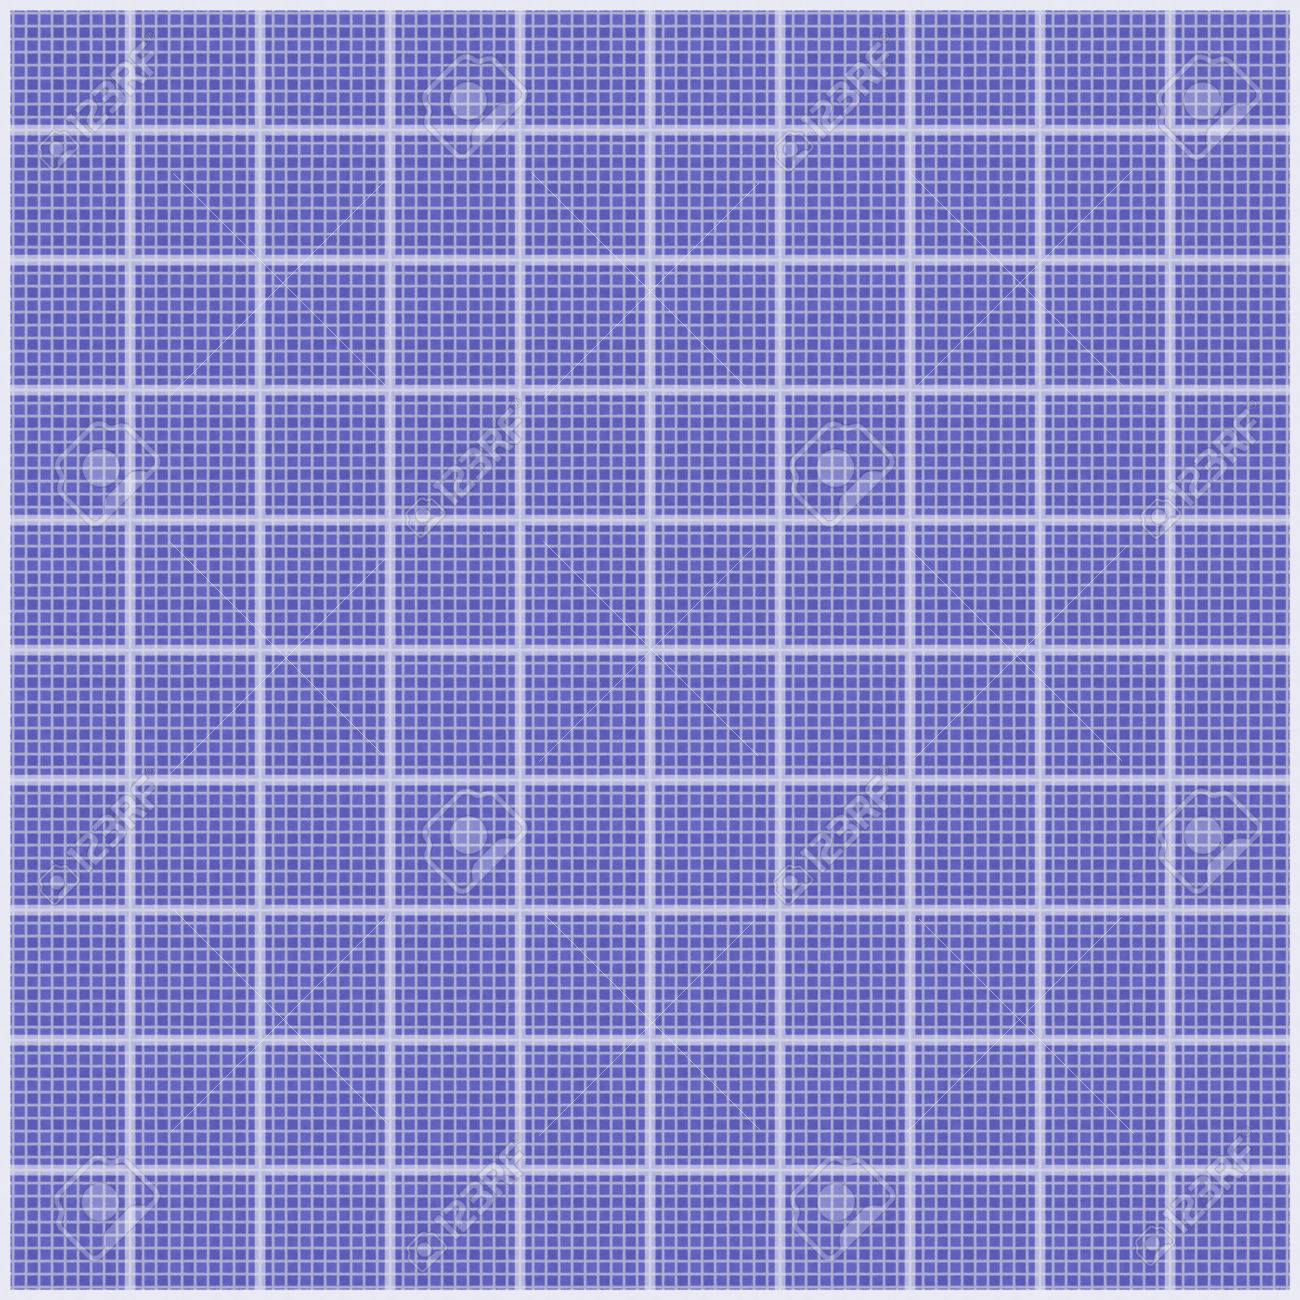 Realistic tileable texture of white grid on blueprint paper stock realistic tileable texture of white grid on blueprint paper stock photo 25473814 malvernweather Choice Image